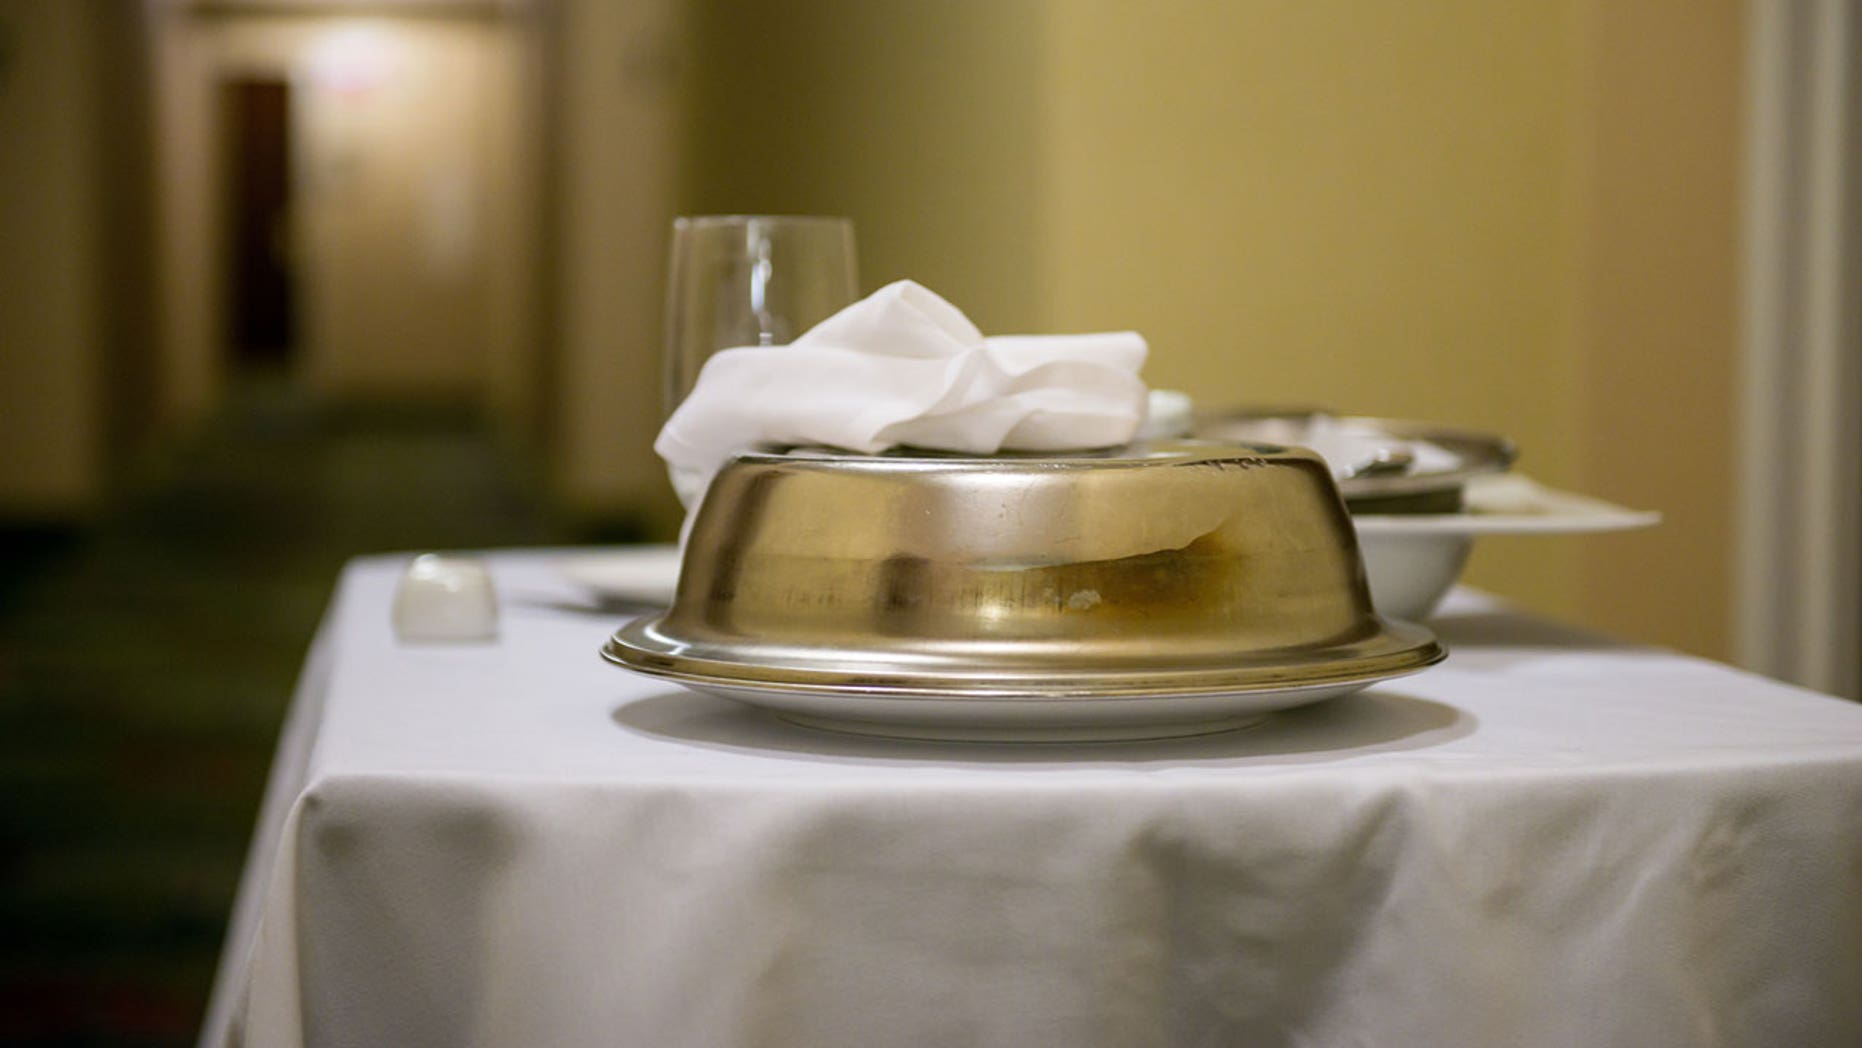 The executive chef at a Westin in Georgia has a few tips for ordering room service.